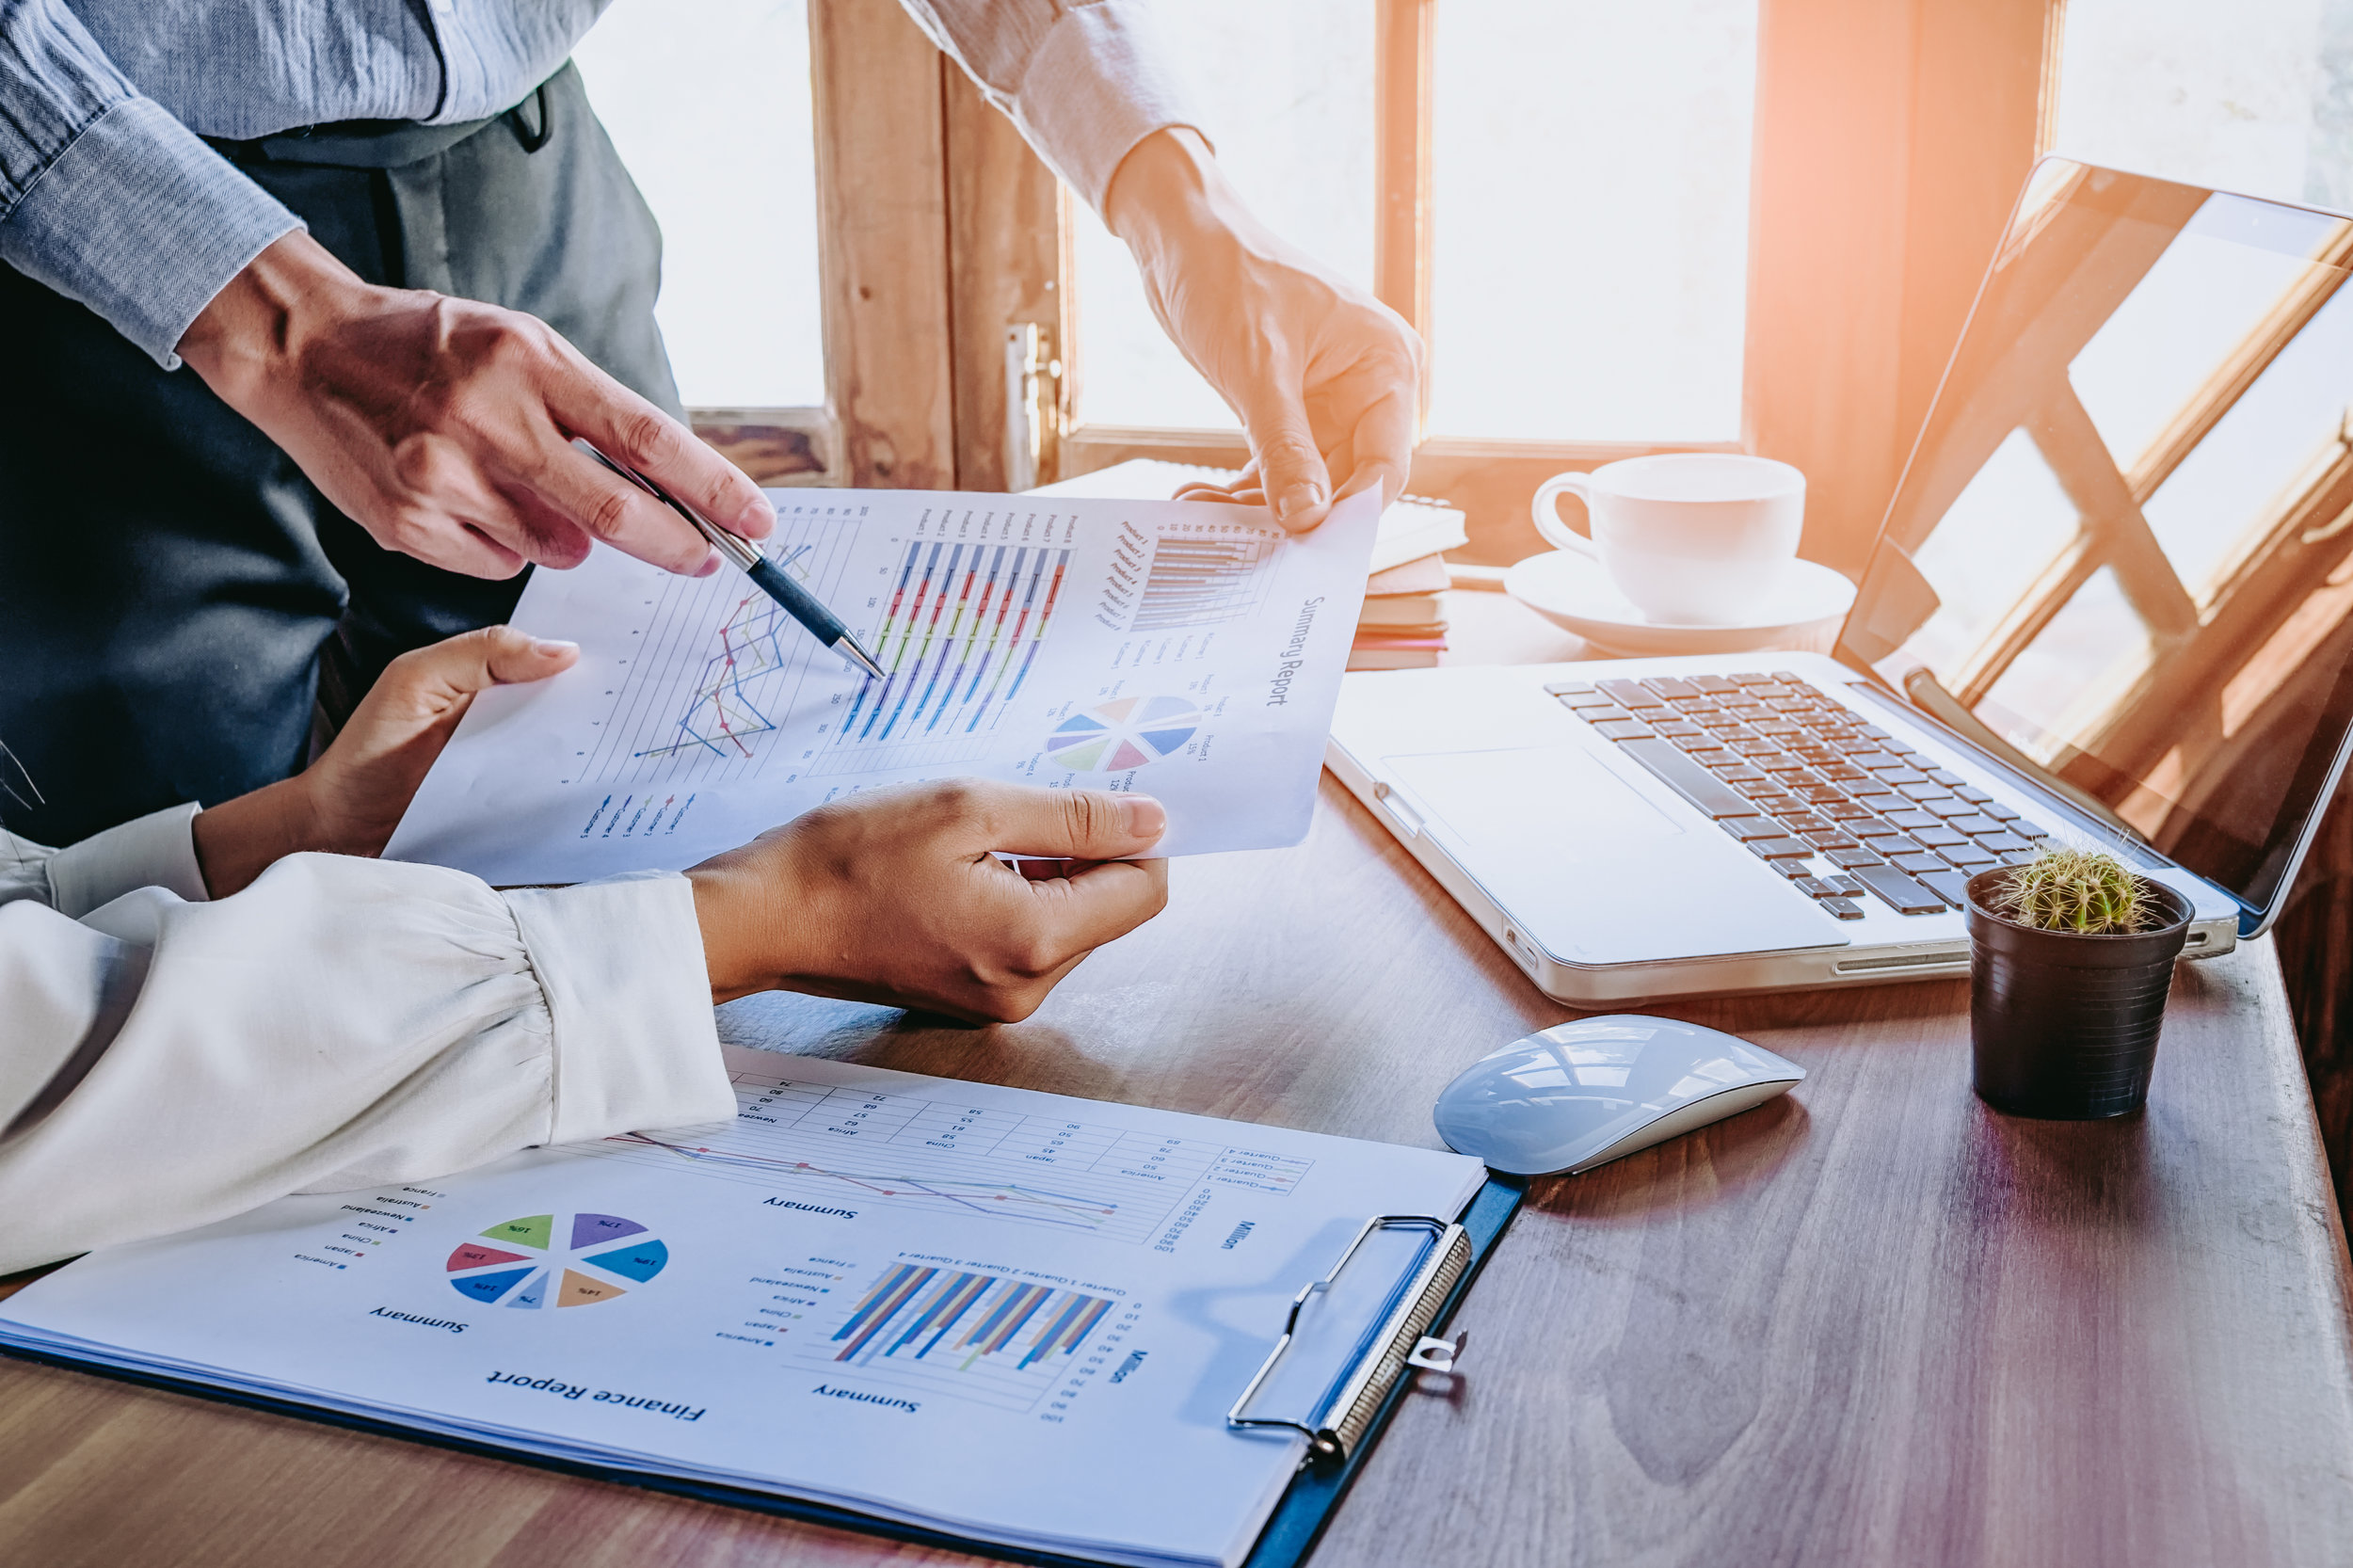 long beach's best cpa firm - Small Business Accounting, Financial Statements, Tax Credits, Pensions, Retirement Planning, Solo 401k, Succession Planning….